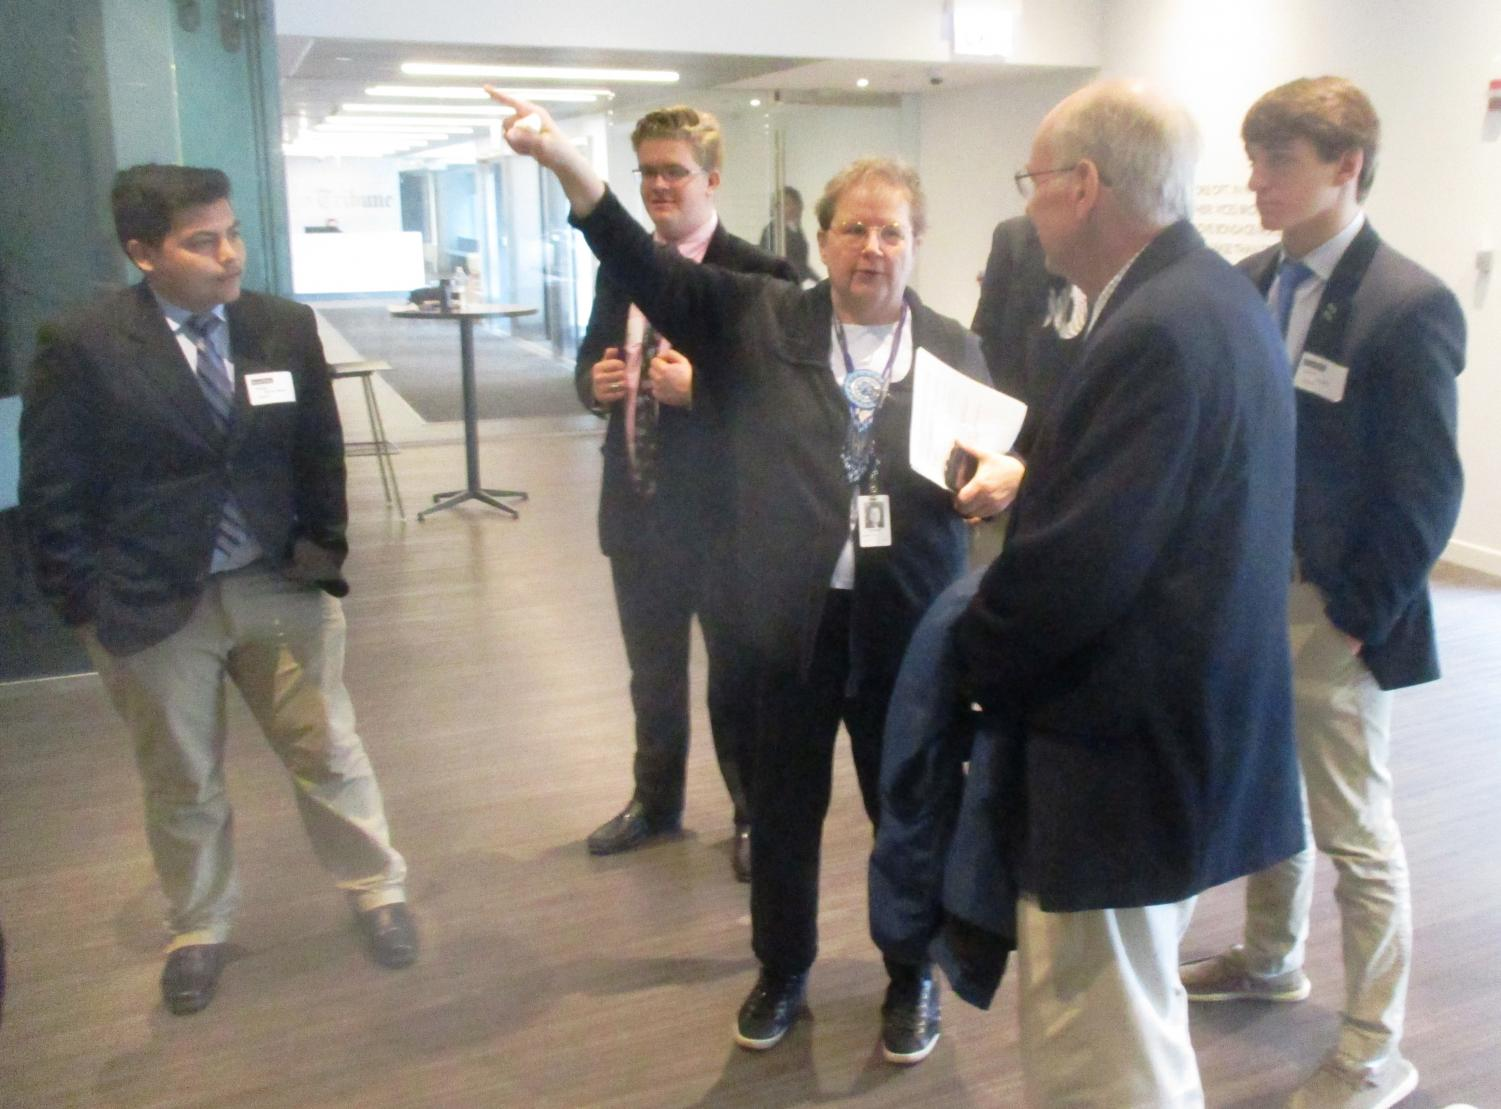 Margaret Holt of the Chicago Tribune gave the Caravan staff a tour of their new offices.